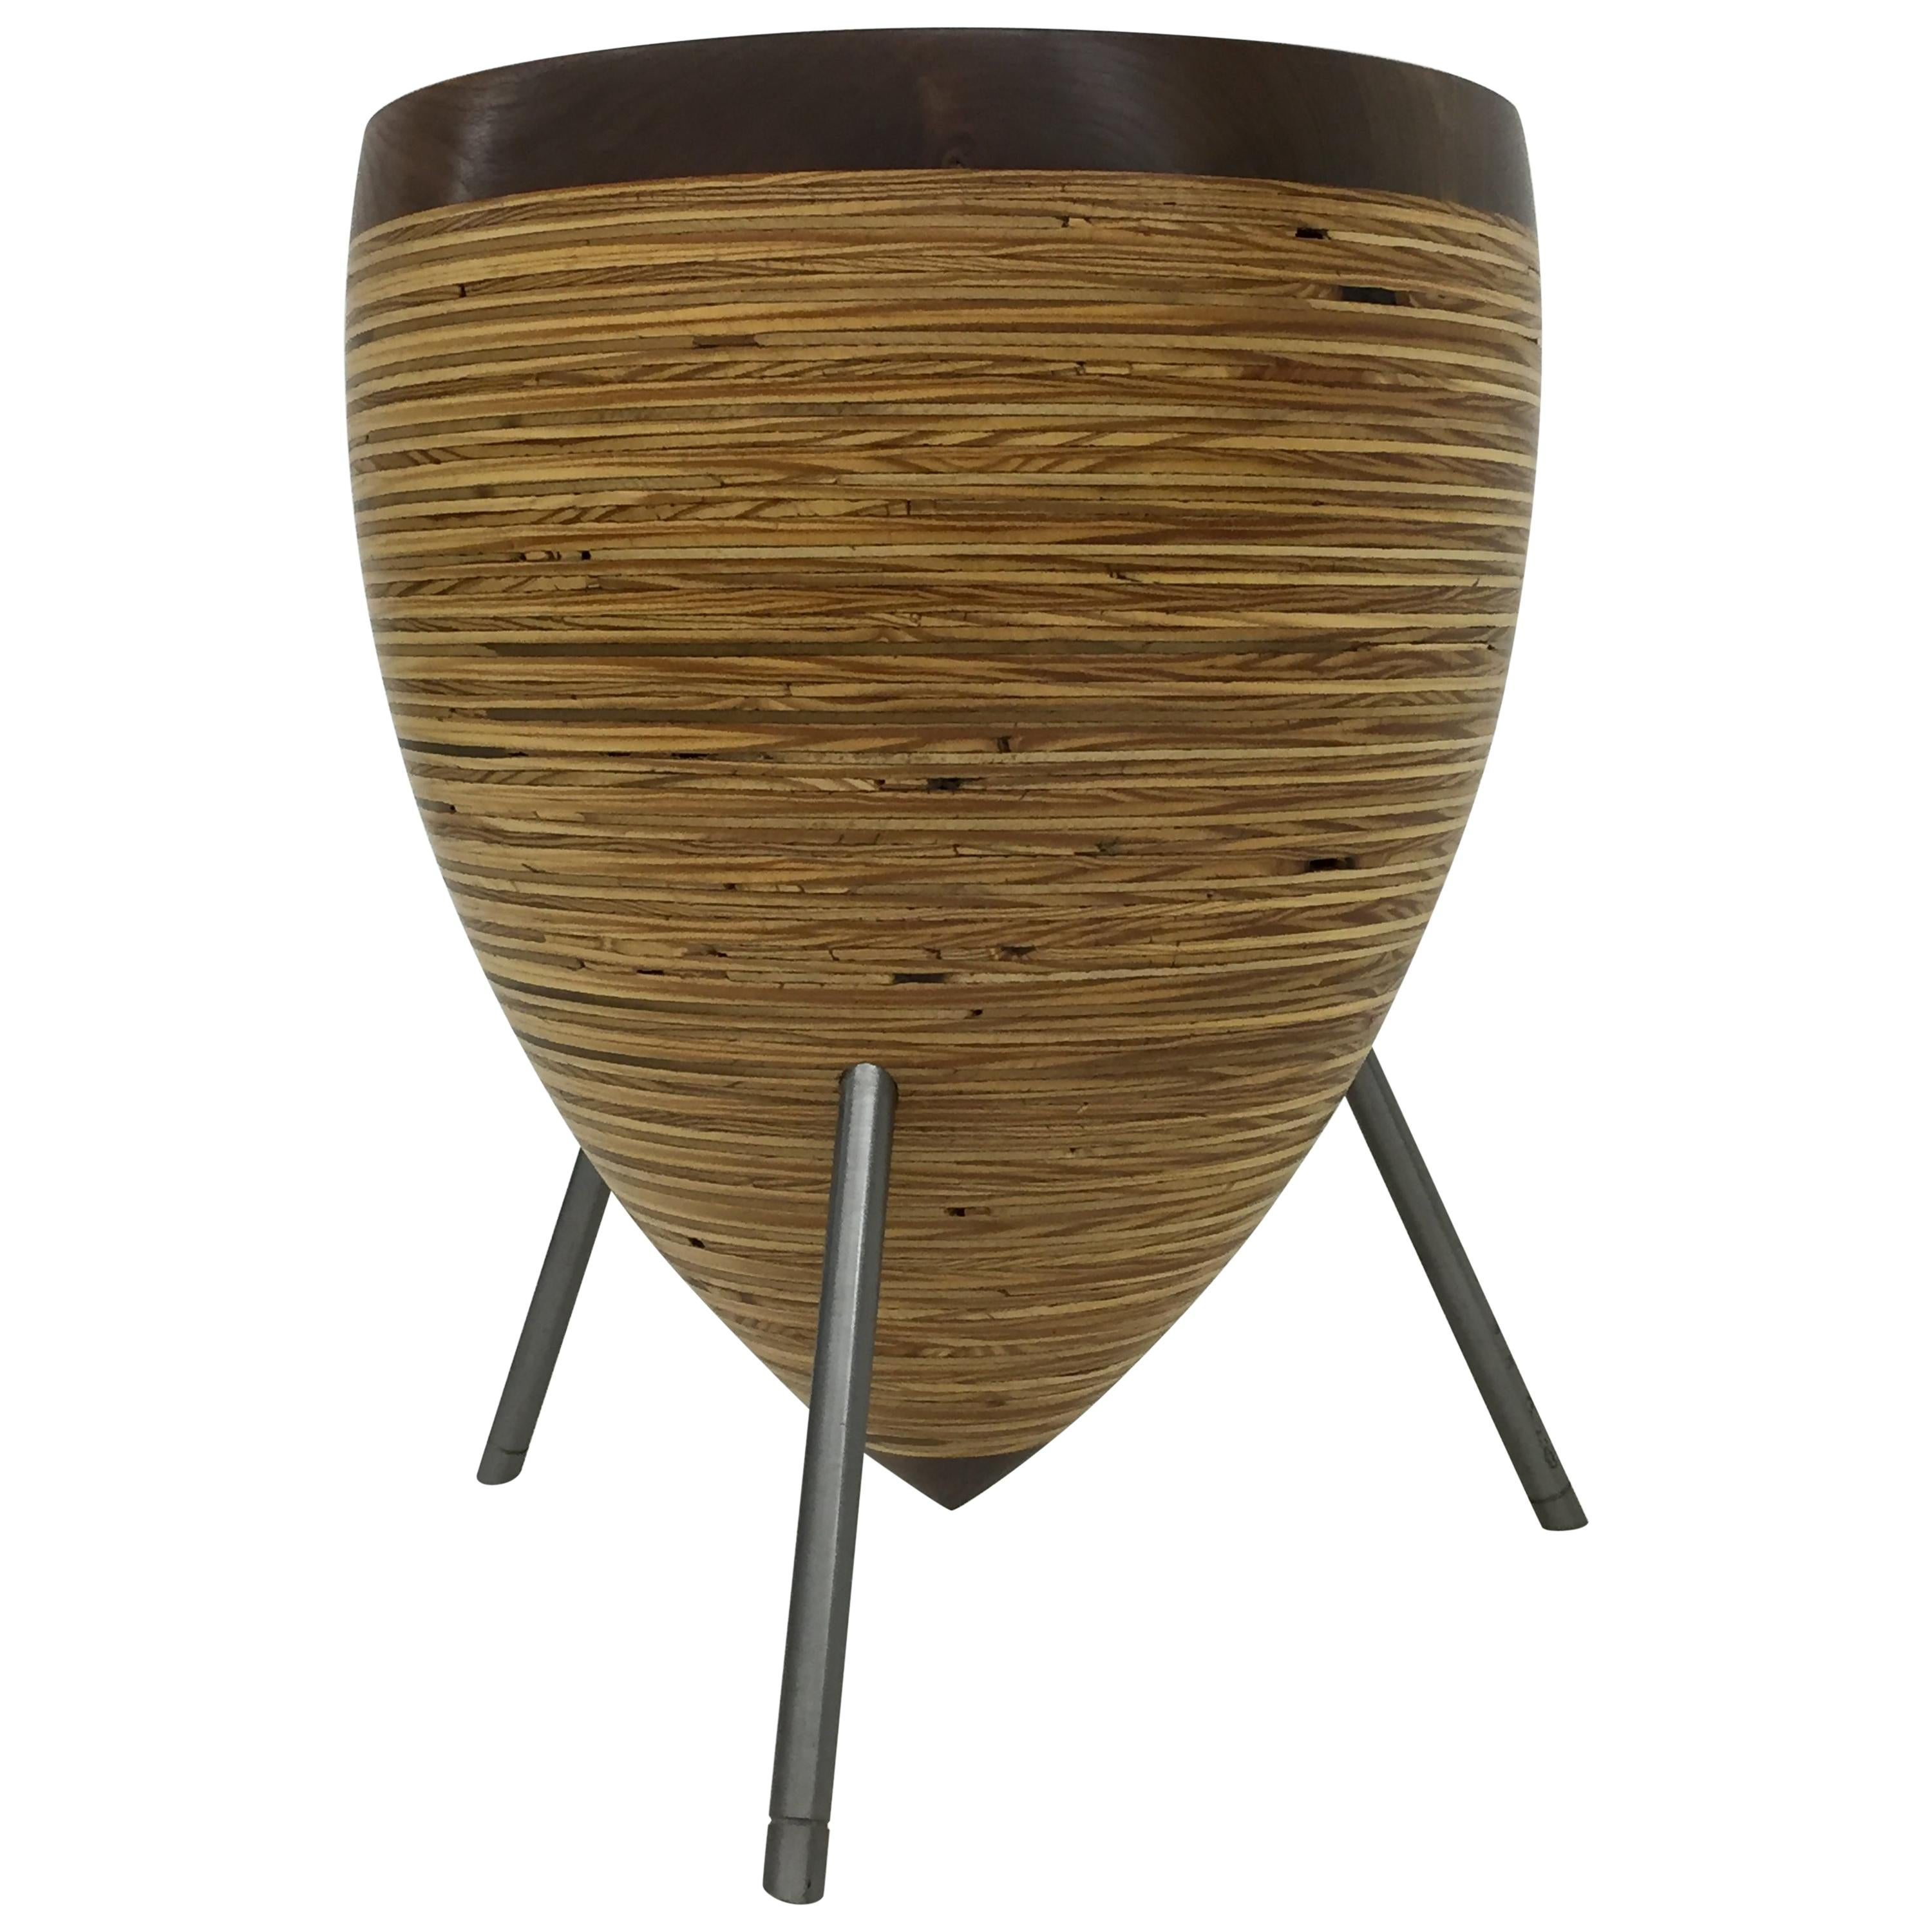 Round Wood Stool and Side Table with Steel Legs 'Lg'